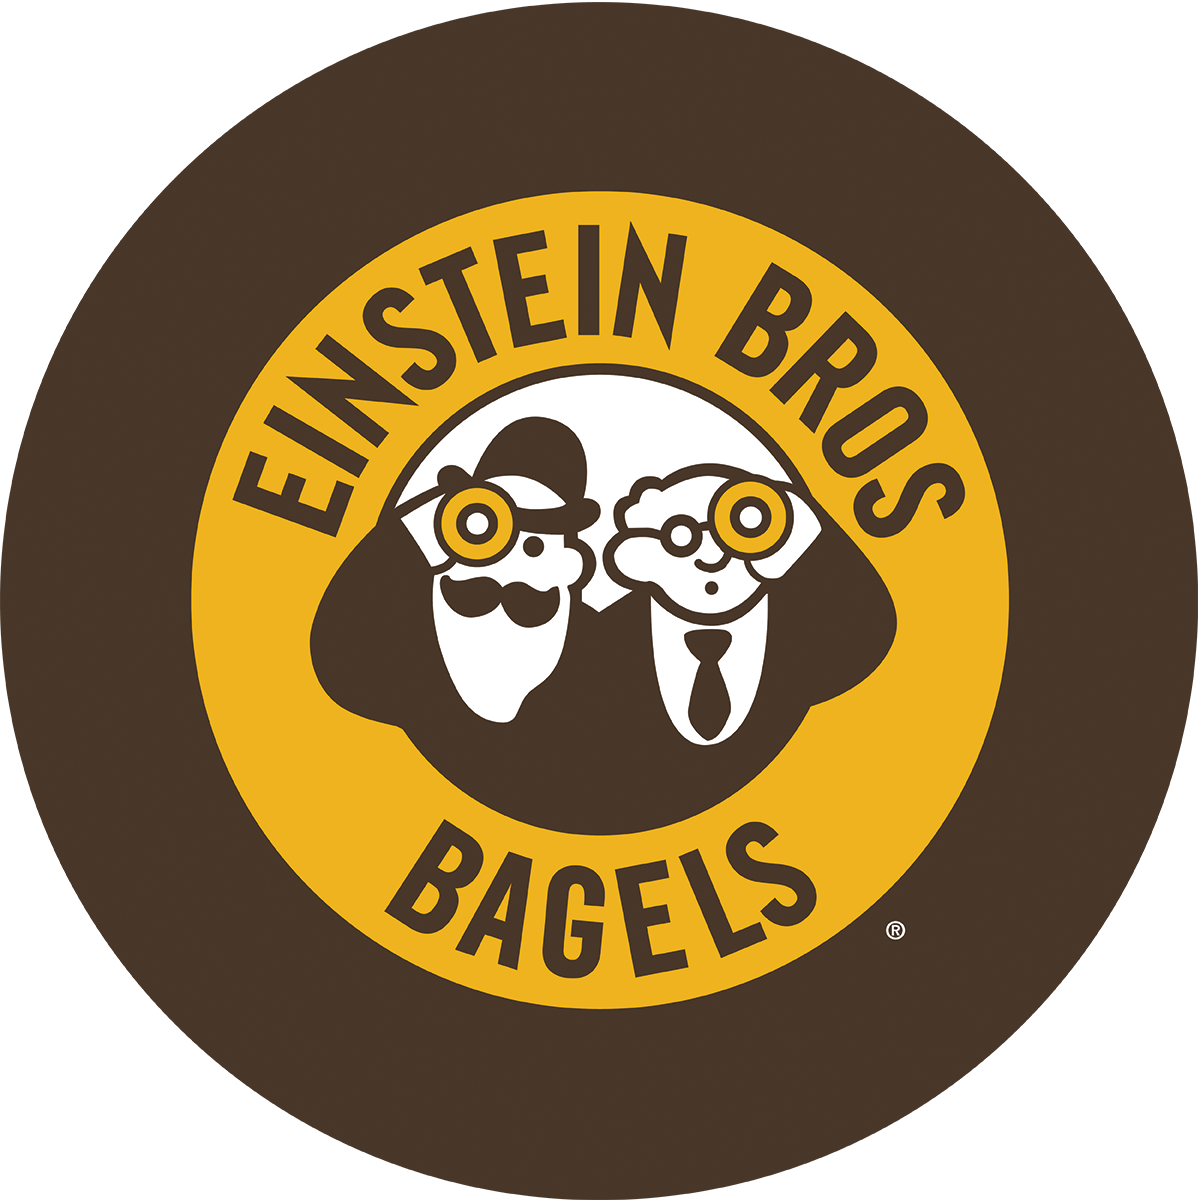 Einstein Bros. Bagels - Greenville, NC - Restaurants